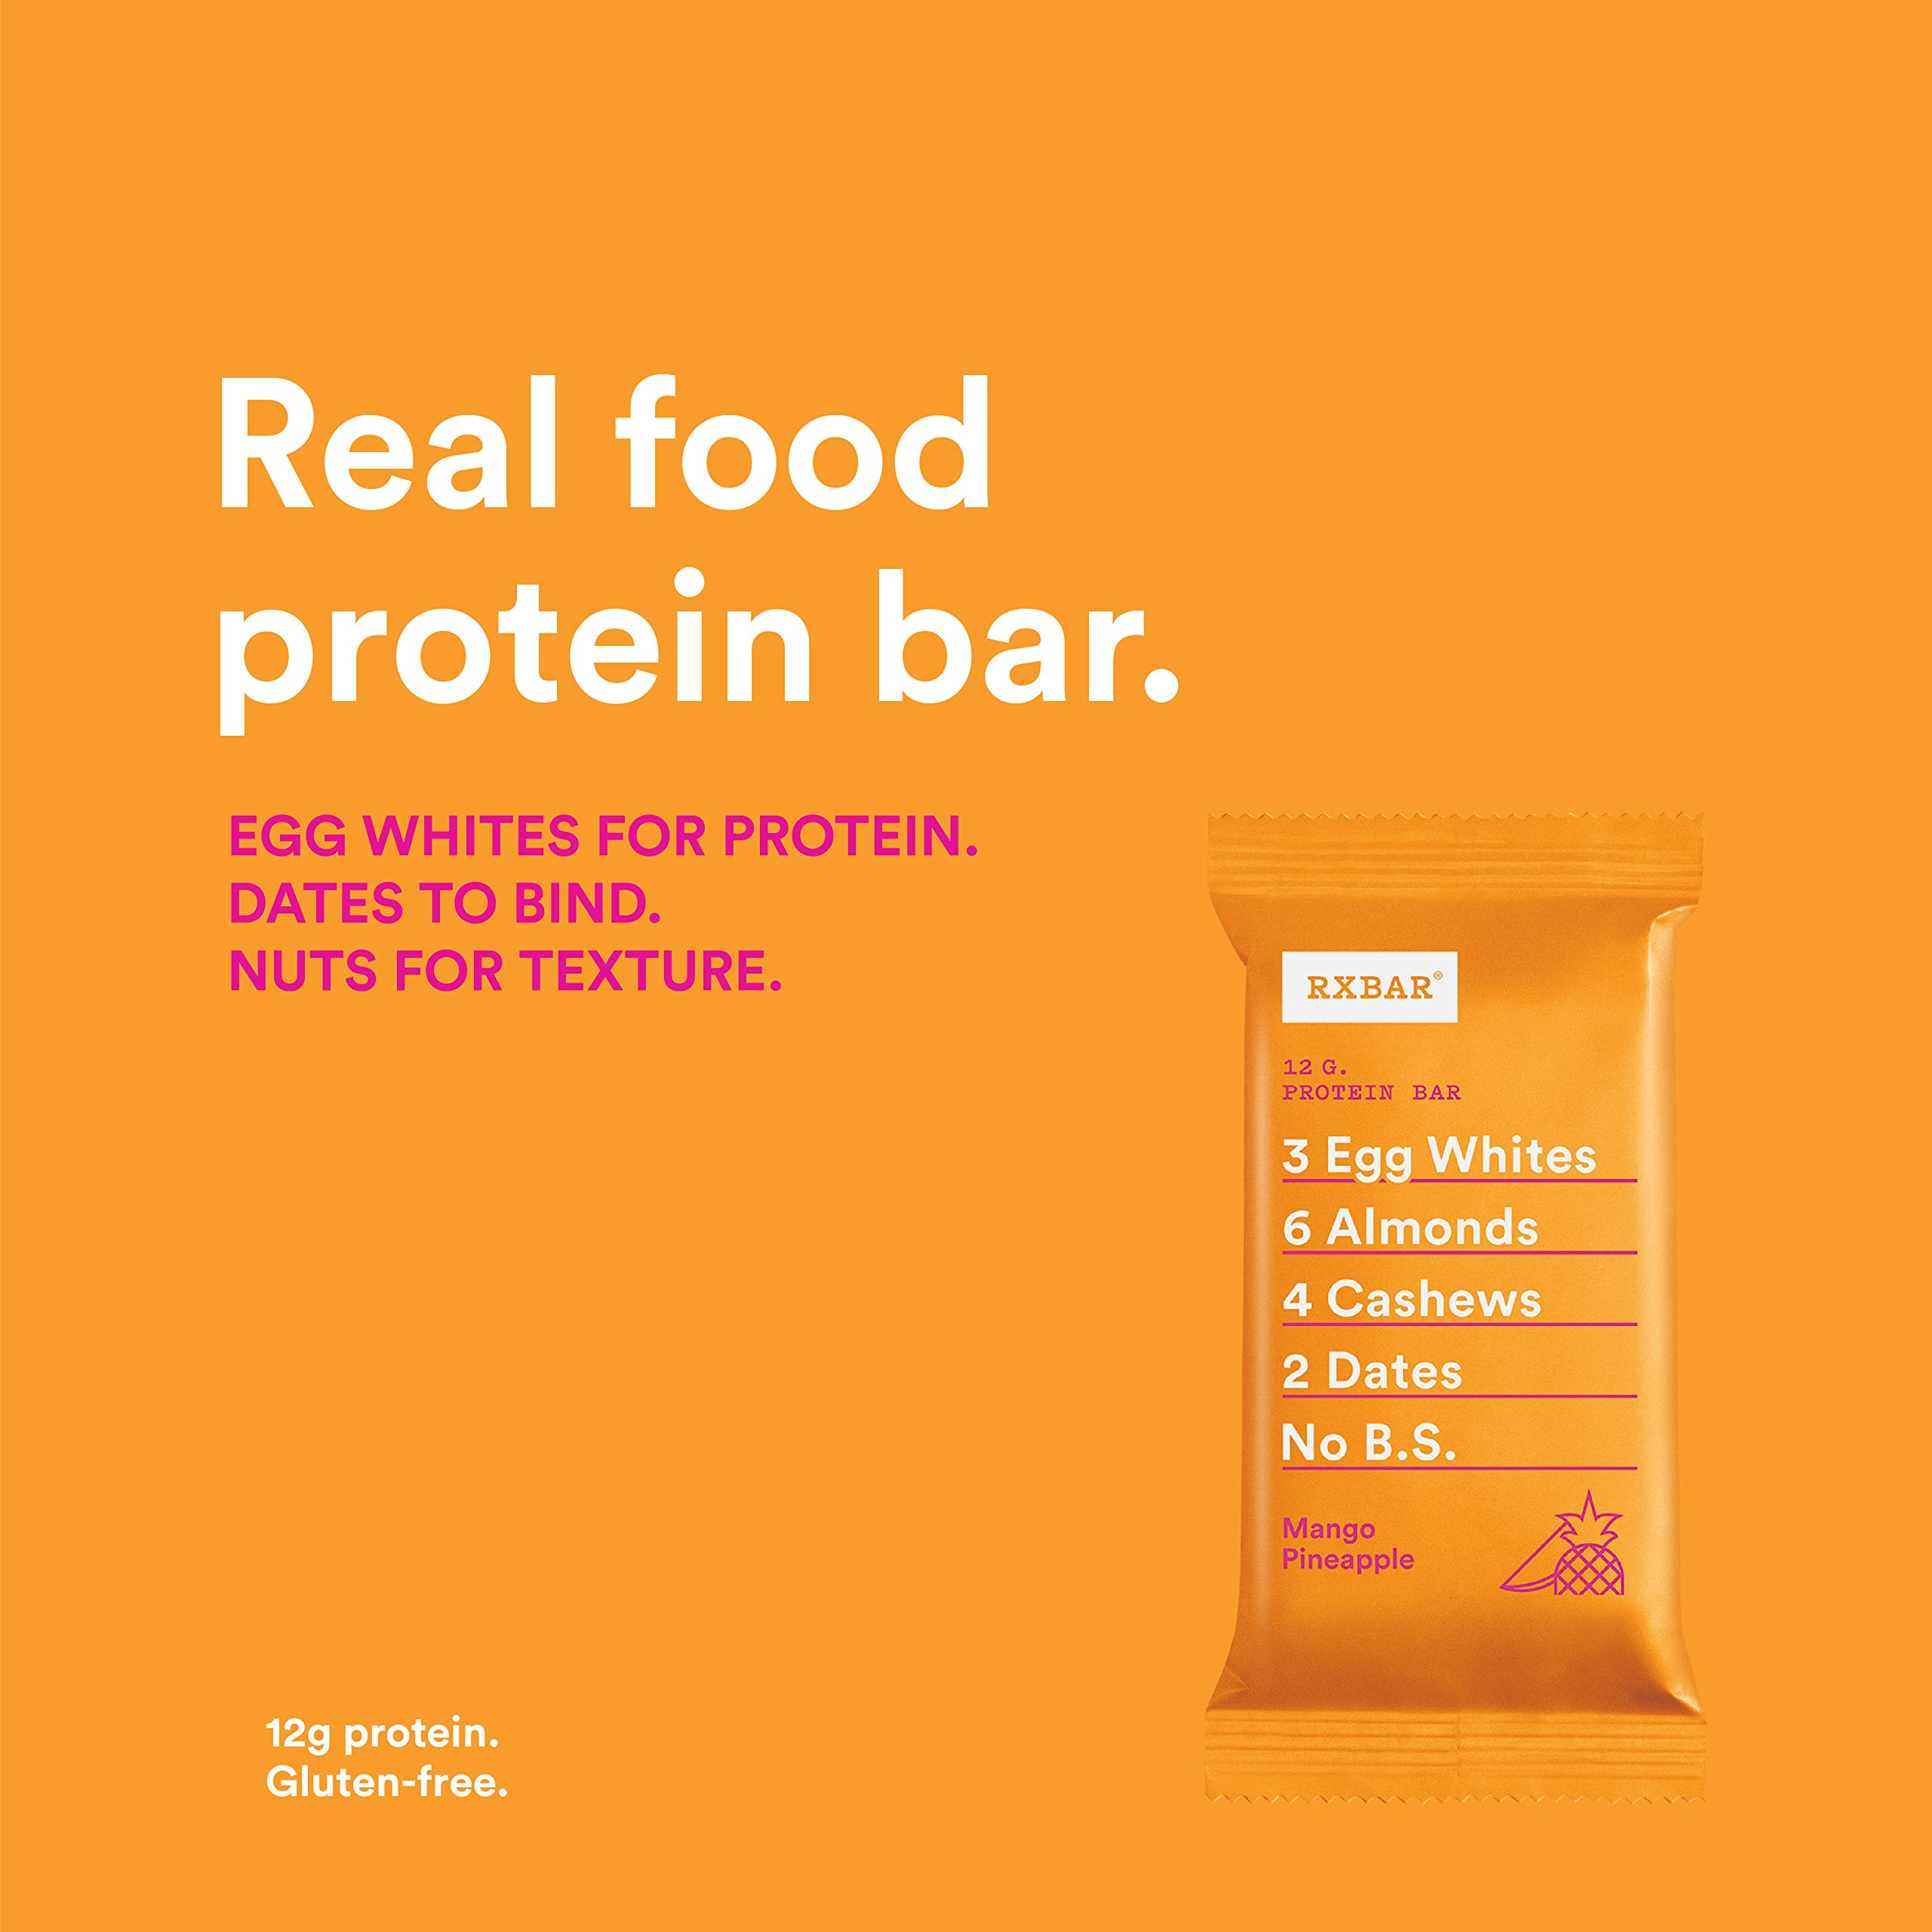 RXBAR Real Food Protein Bar, Mango Pineapple, Gluten Free, 1.83oz Bars, 24 Count by RXBAR (Image #3)